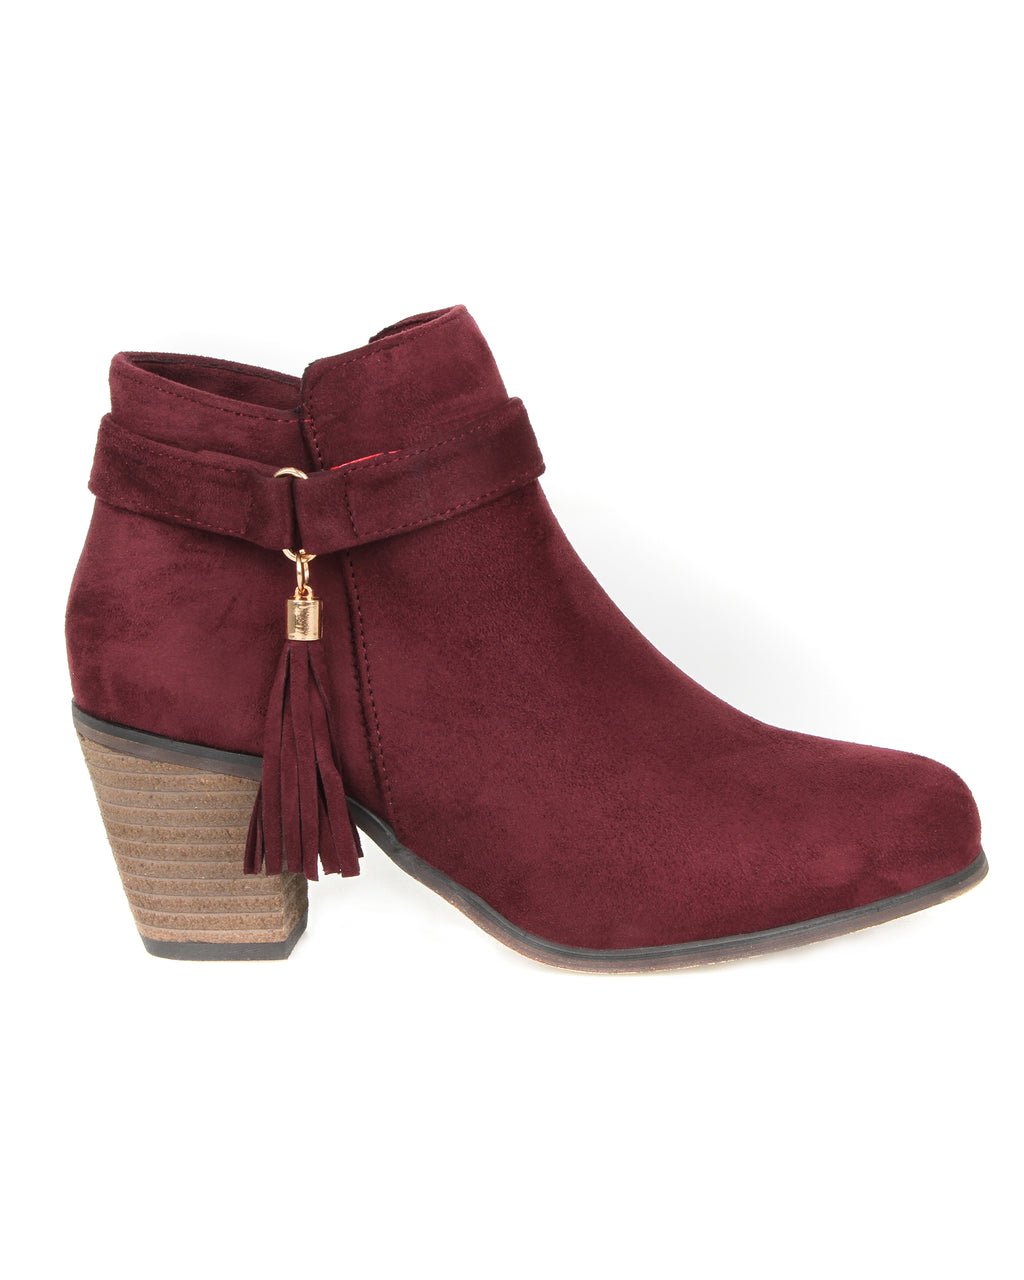 Tomaz JSB27 Ankle Boots (Maroon)